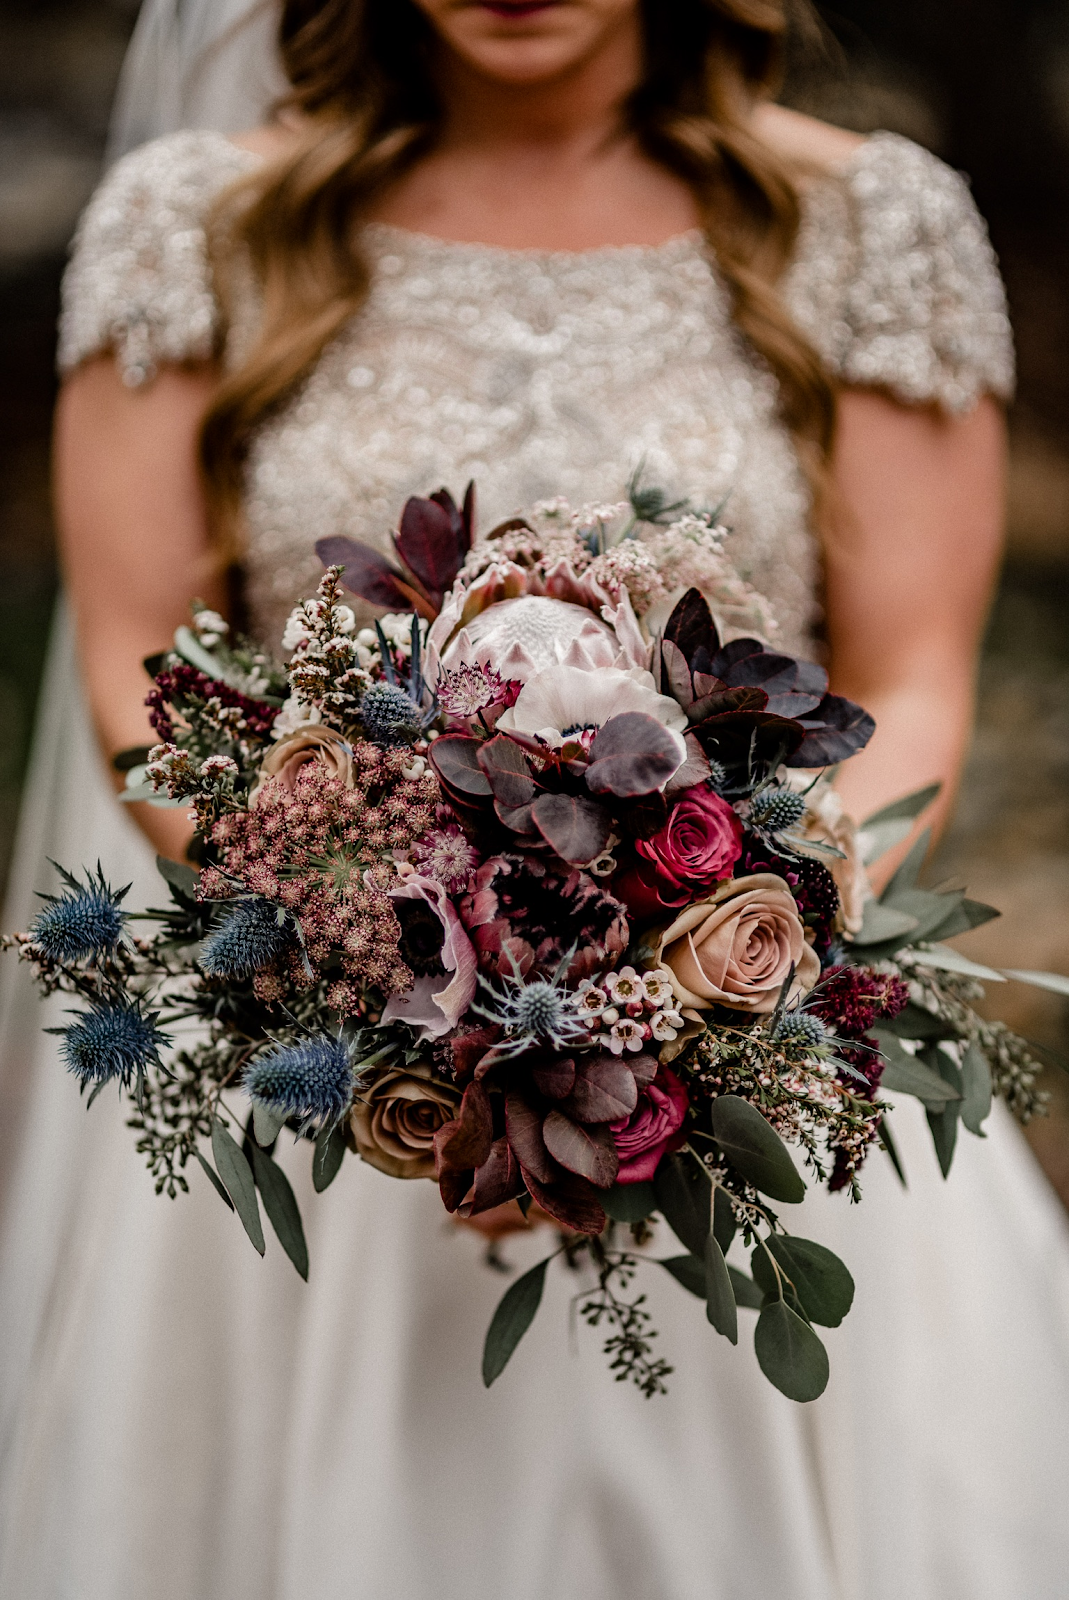 K'Mich Weddings - wedding planning - bouquets with colors - Joy Unspoken Flowers